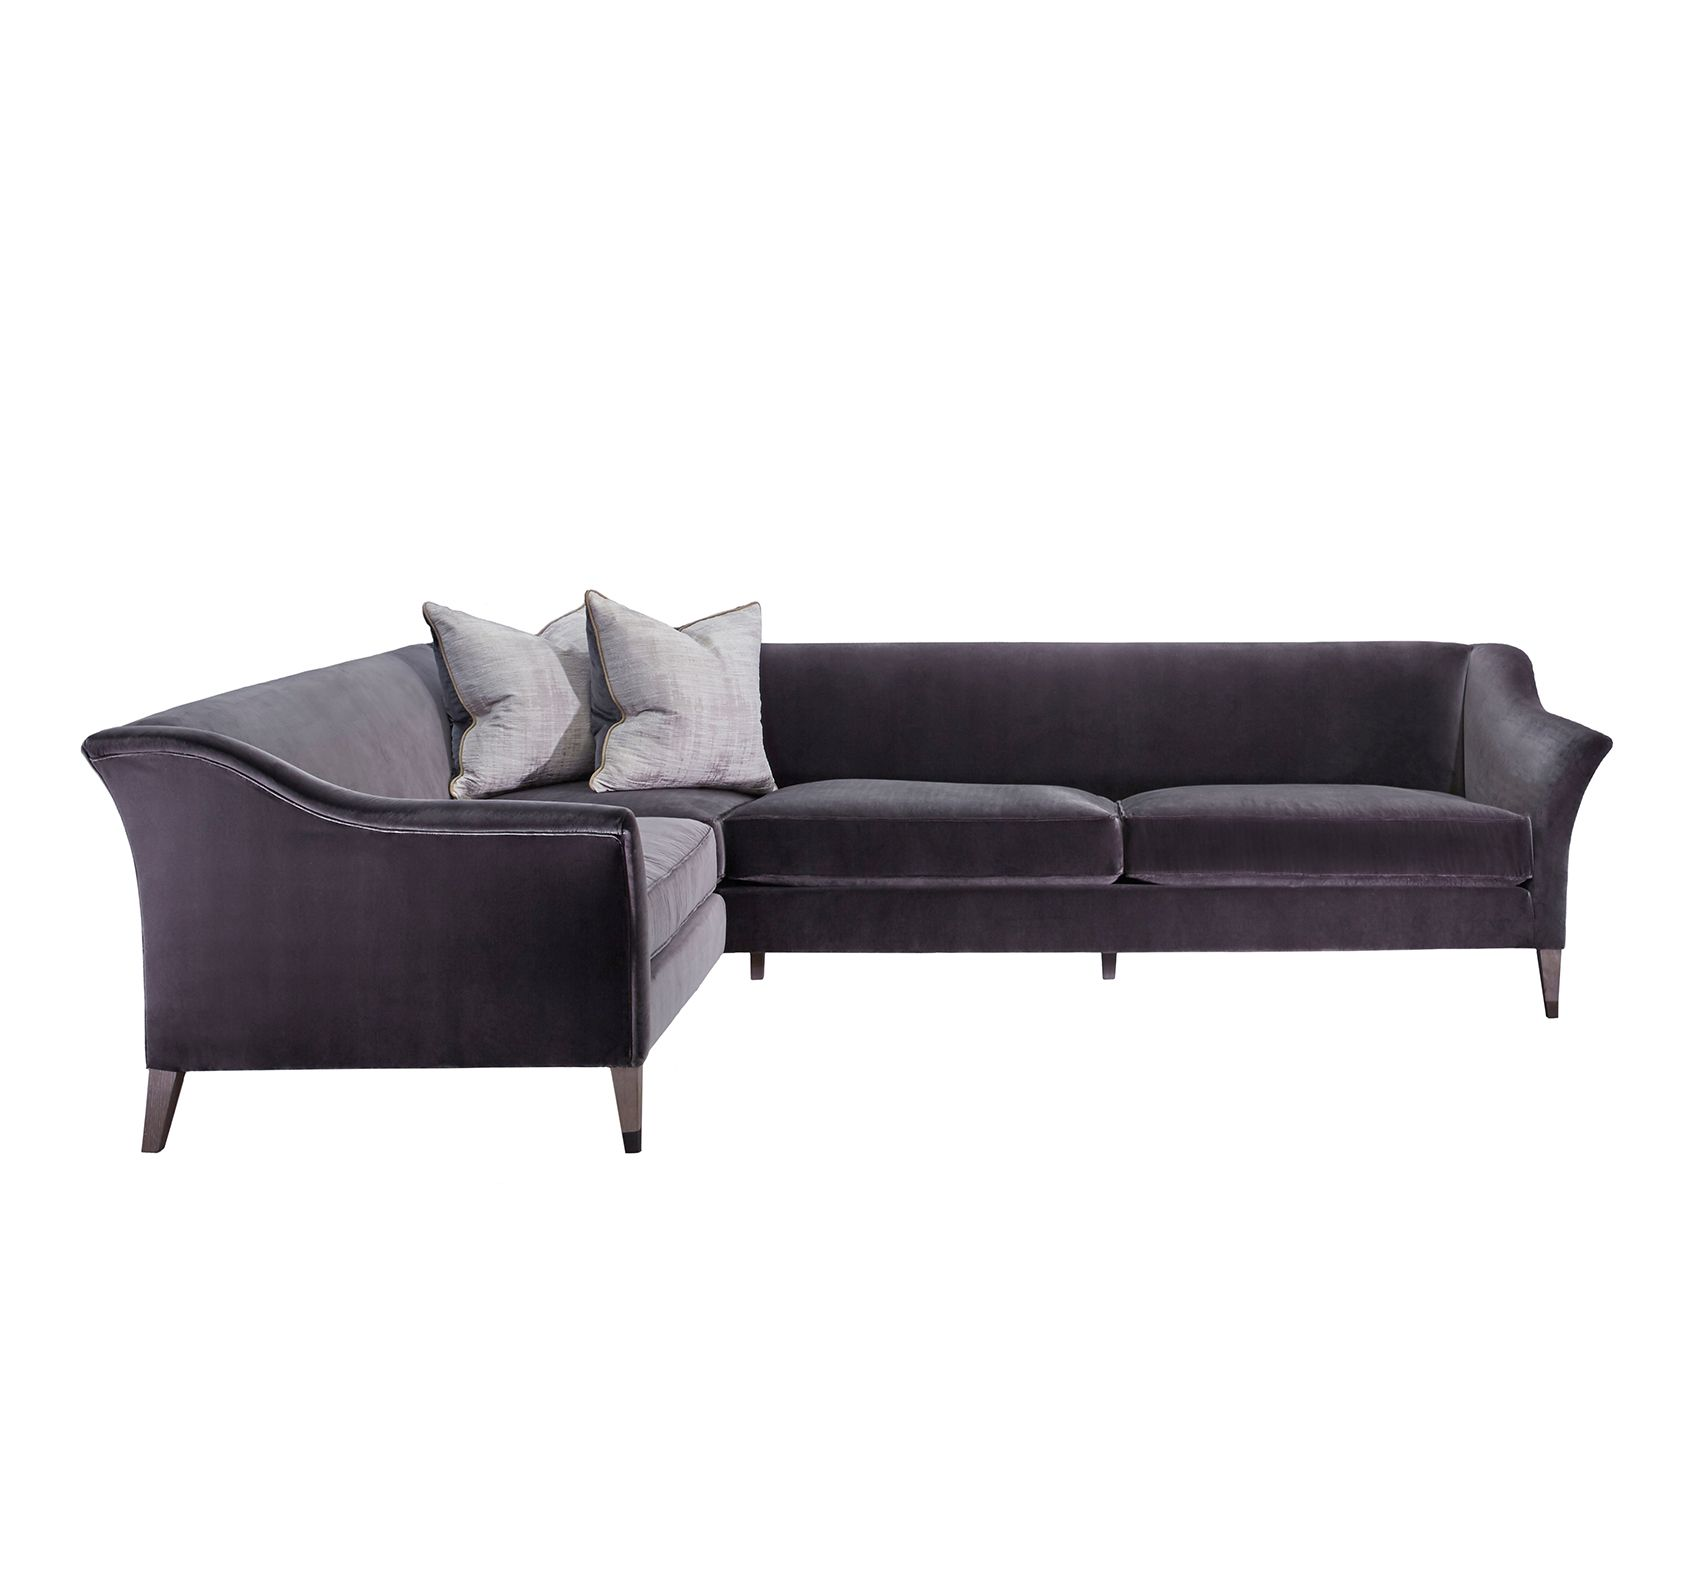 Hemingway L Shaped Sofa Bespoke And Luxury For The Home Immediate Delivery All Hemmingway Shape In Stock